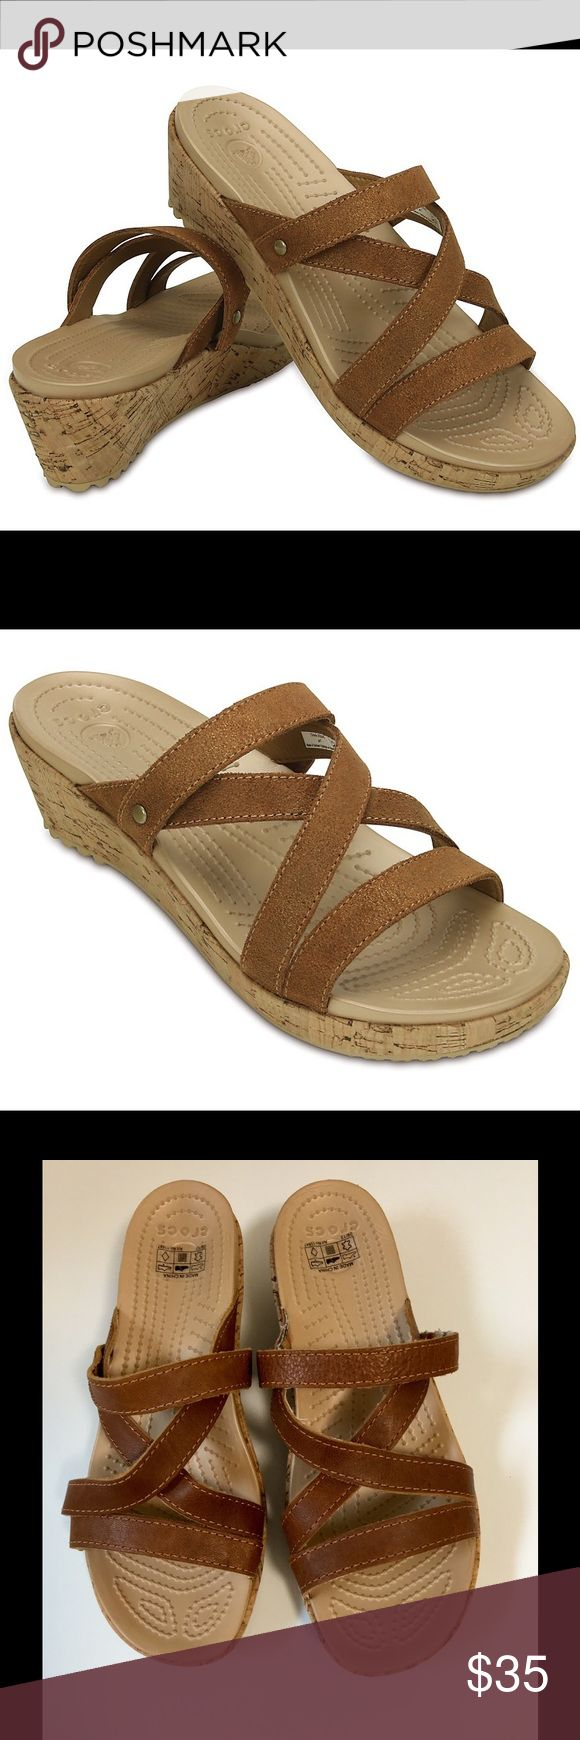 "Crocs Sandals Crocs A-Leigh Leather Mini Wedge Sandals! 2""inch heel ! Women's size 6 wide crocs Shoes Sandals"